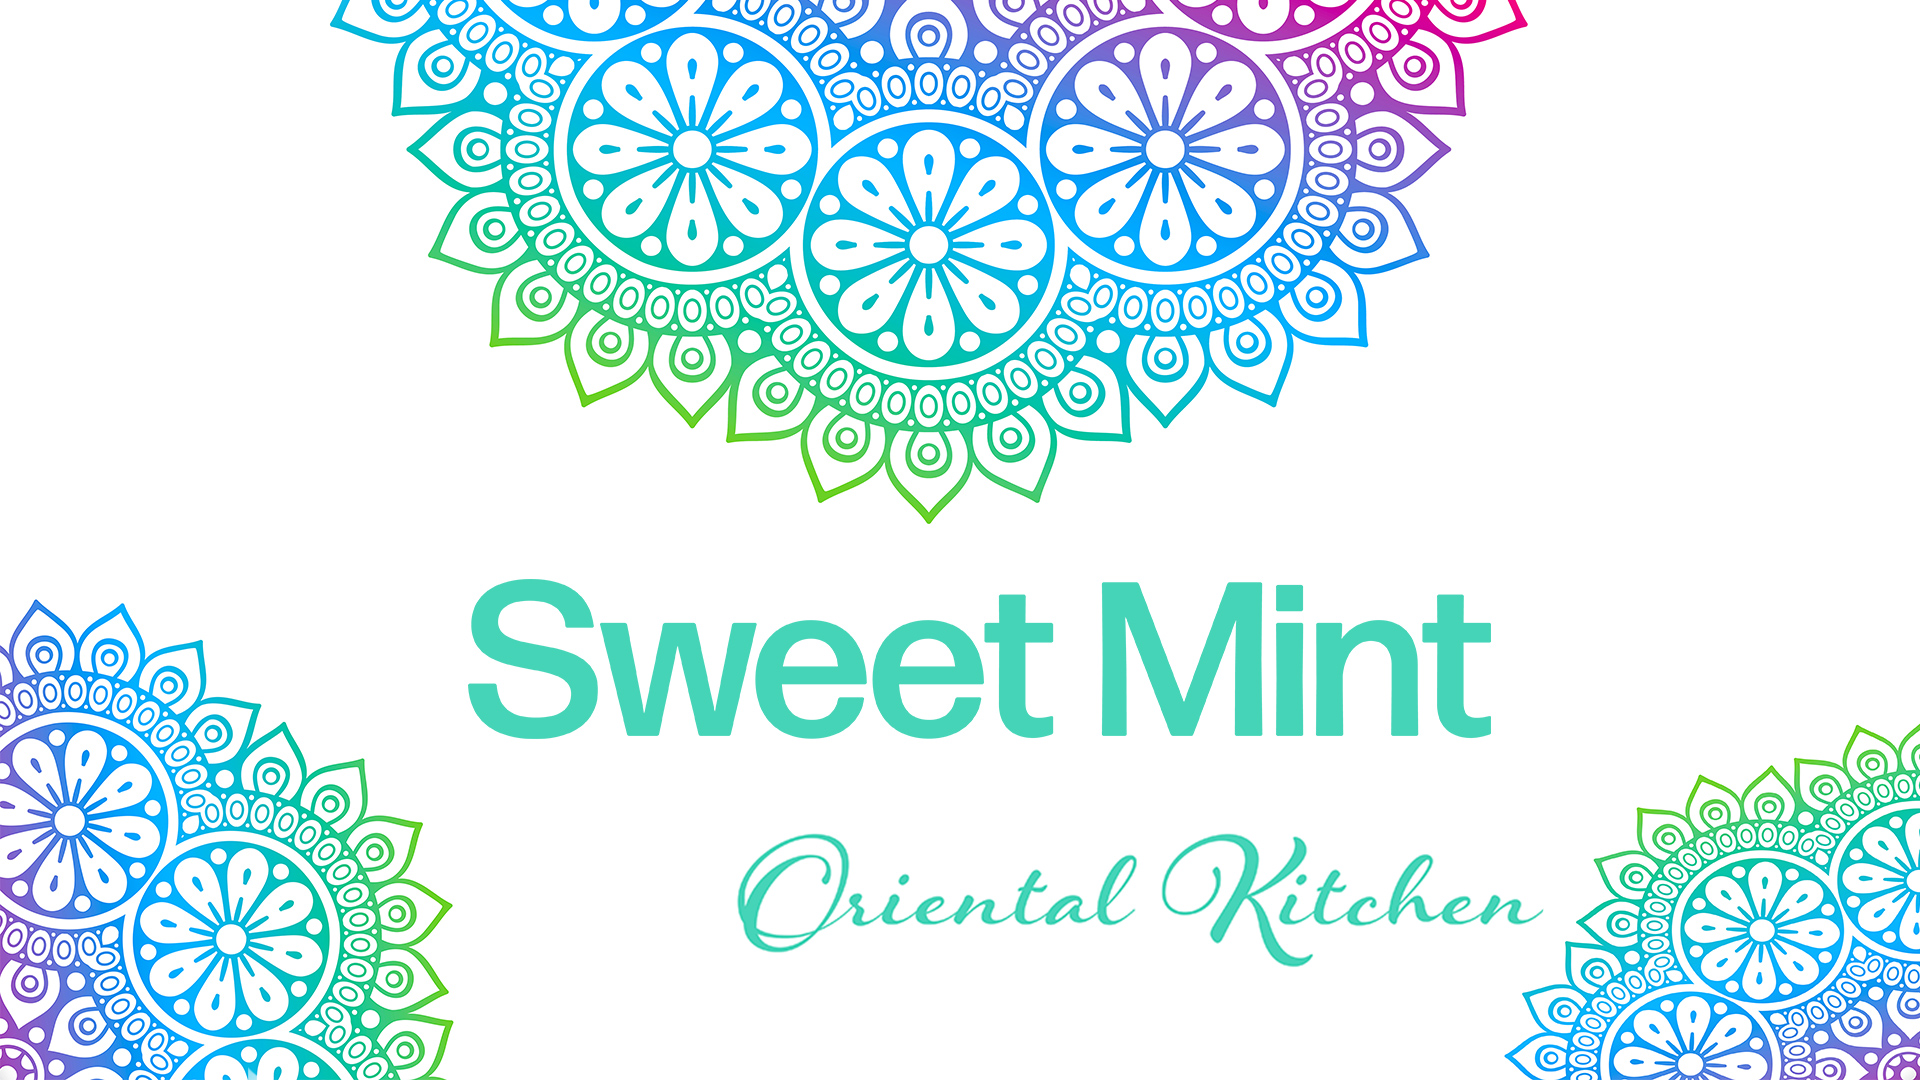 Sweet Mint - Oriental Kitchen Logo